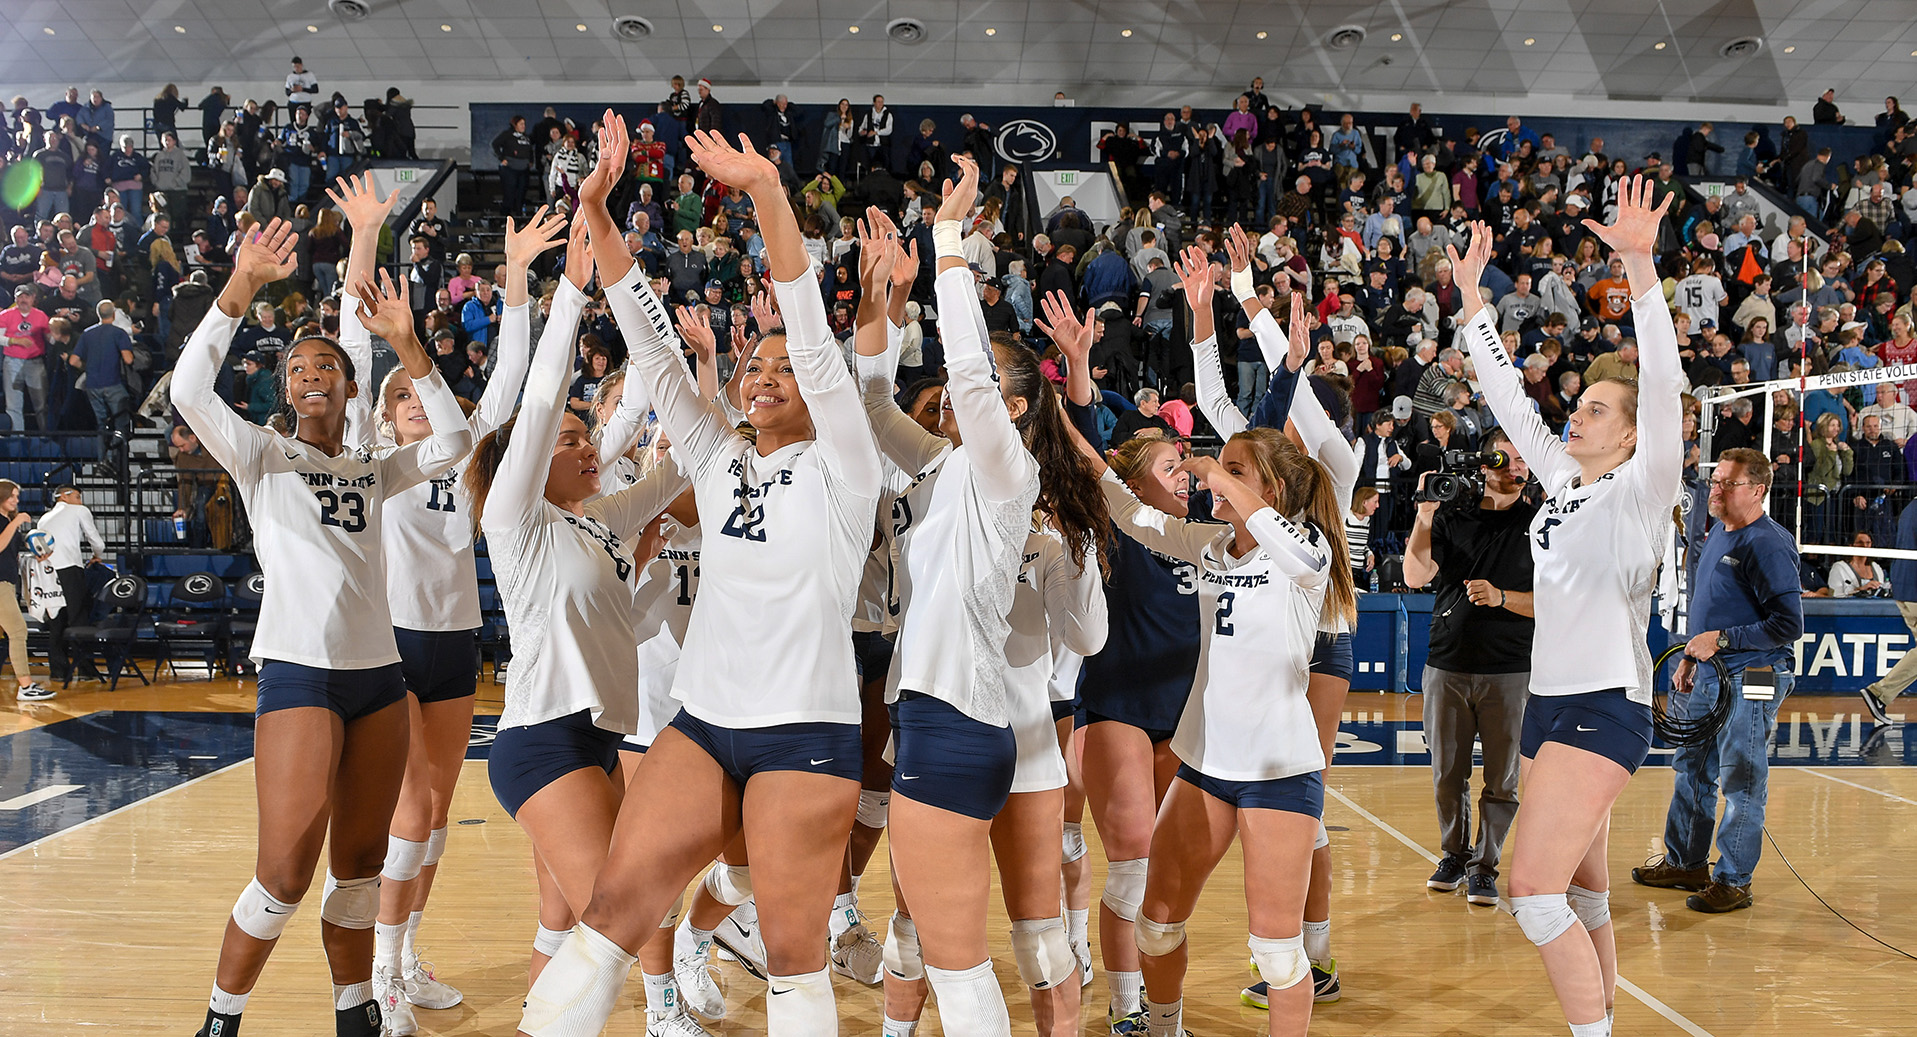 Nittany Lions Feeling Right At Home Ahead Of Ncaa Tournament Penn State University Athletics